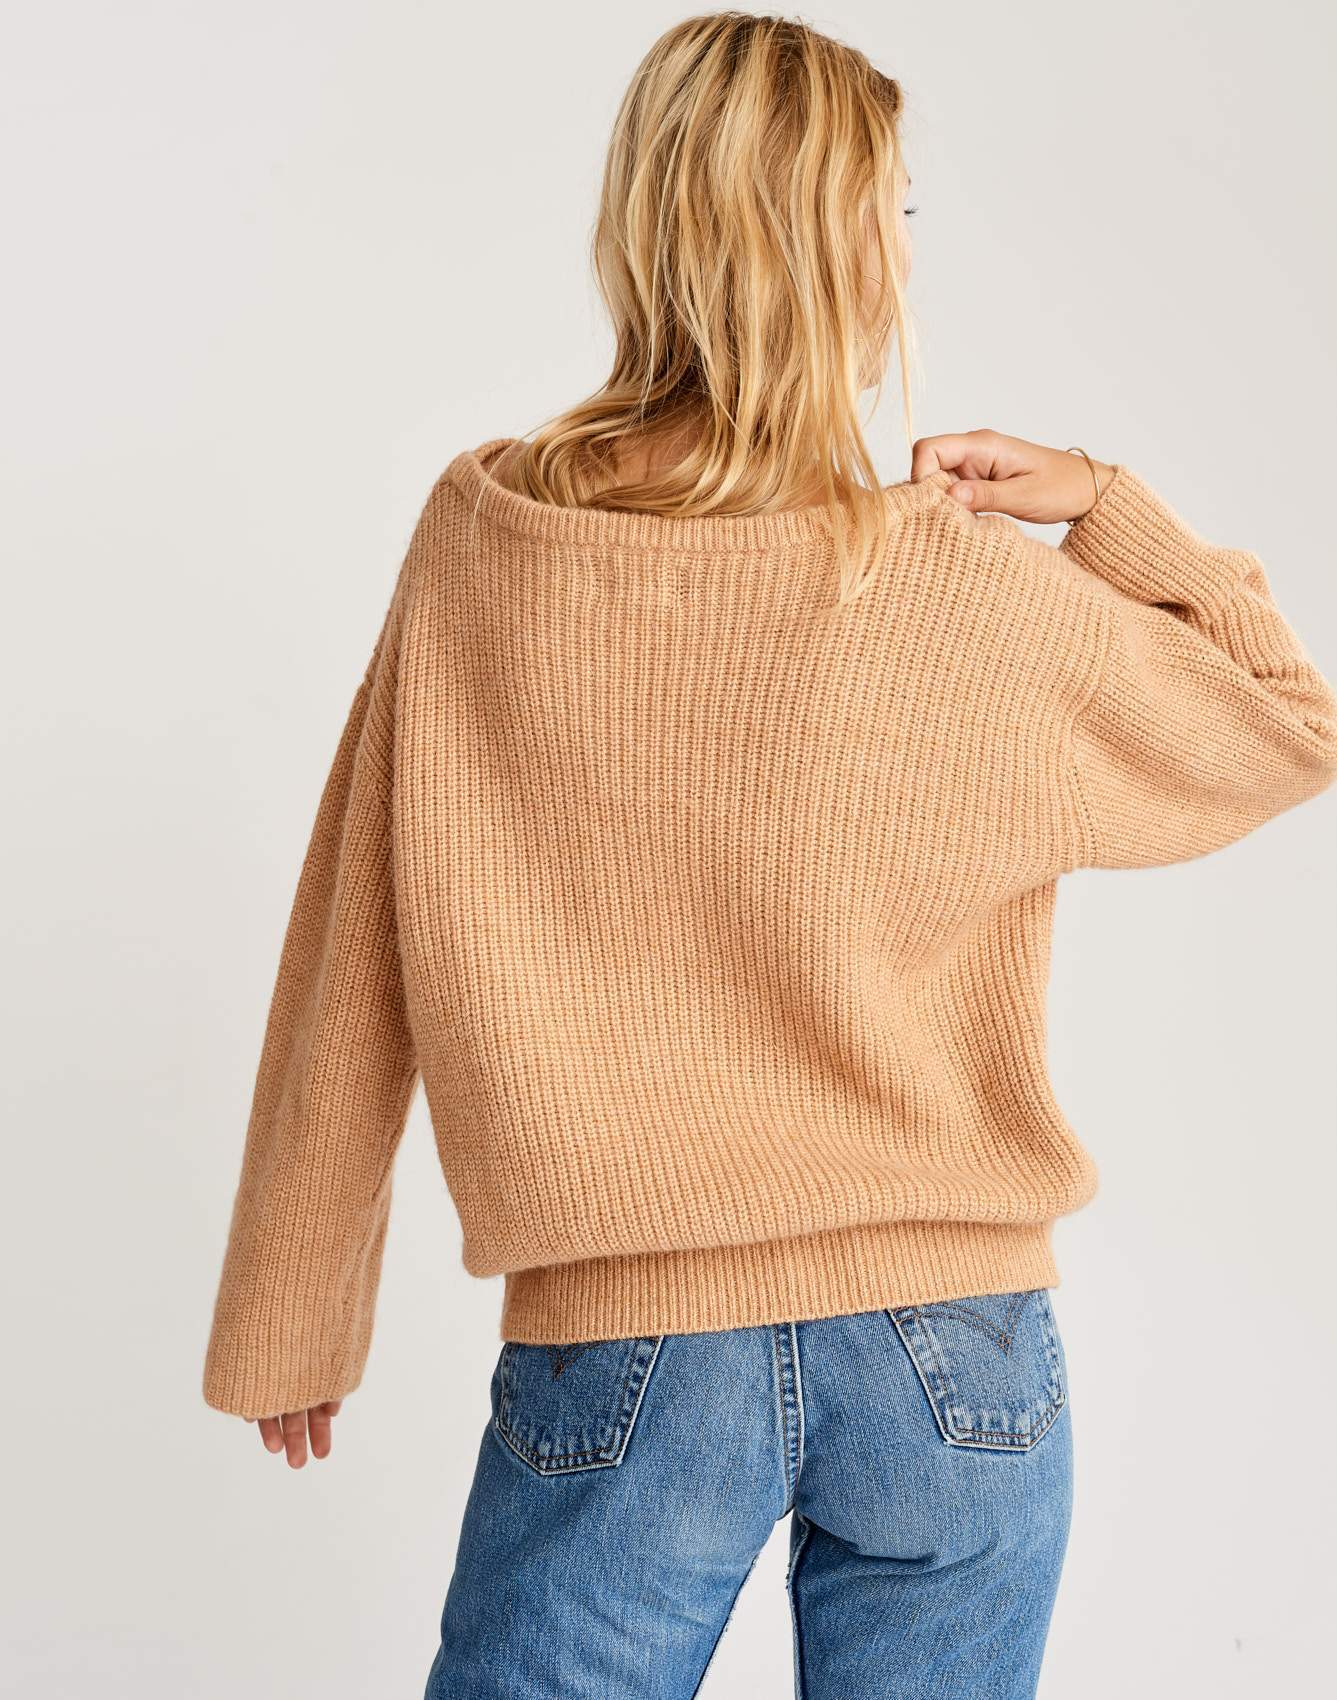 Bellerose oversized beige knit sweater for women